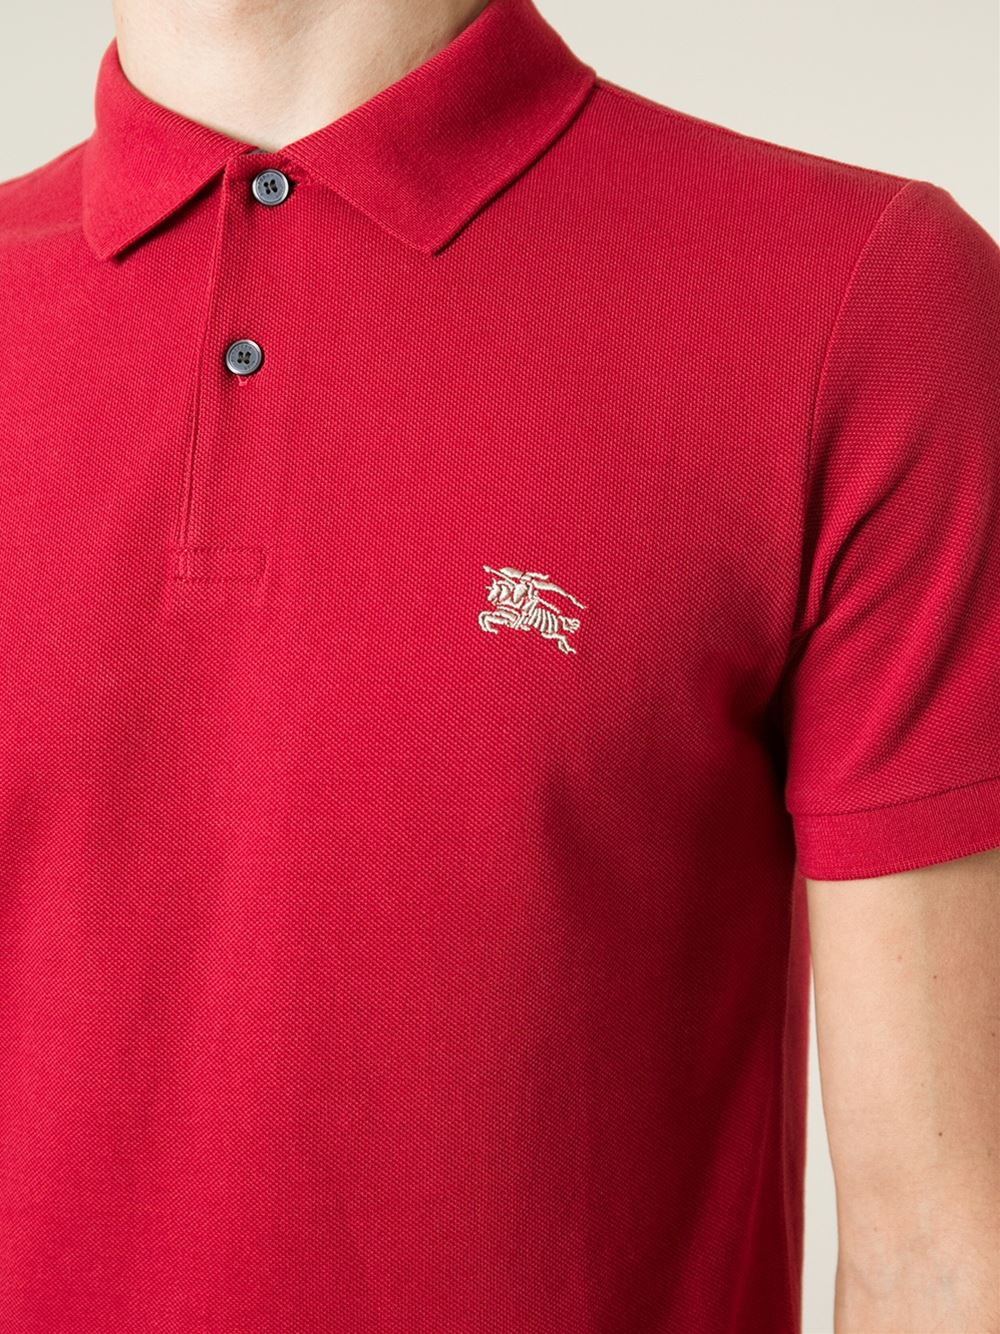 Lyst burberry brit logo embroidered polo shirt in red for Logo embroidered polo shirts